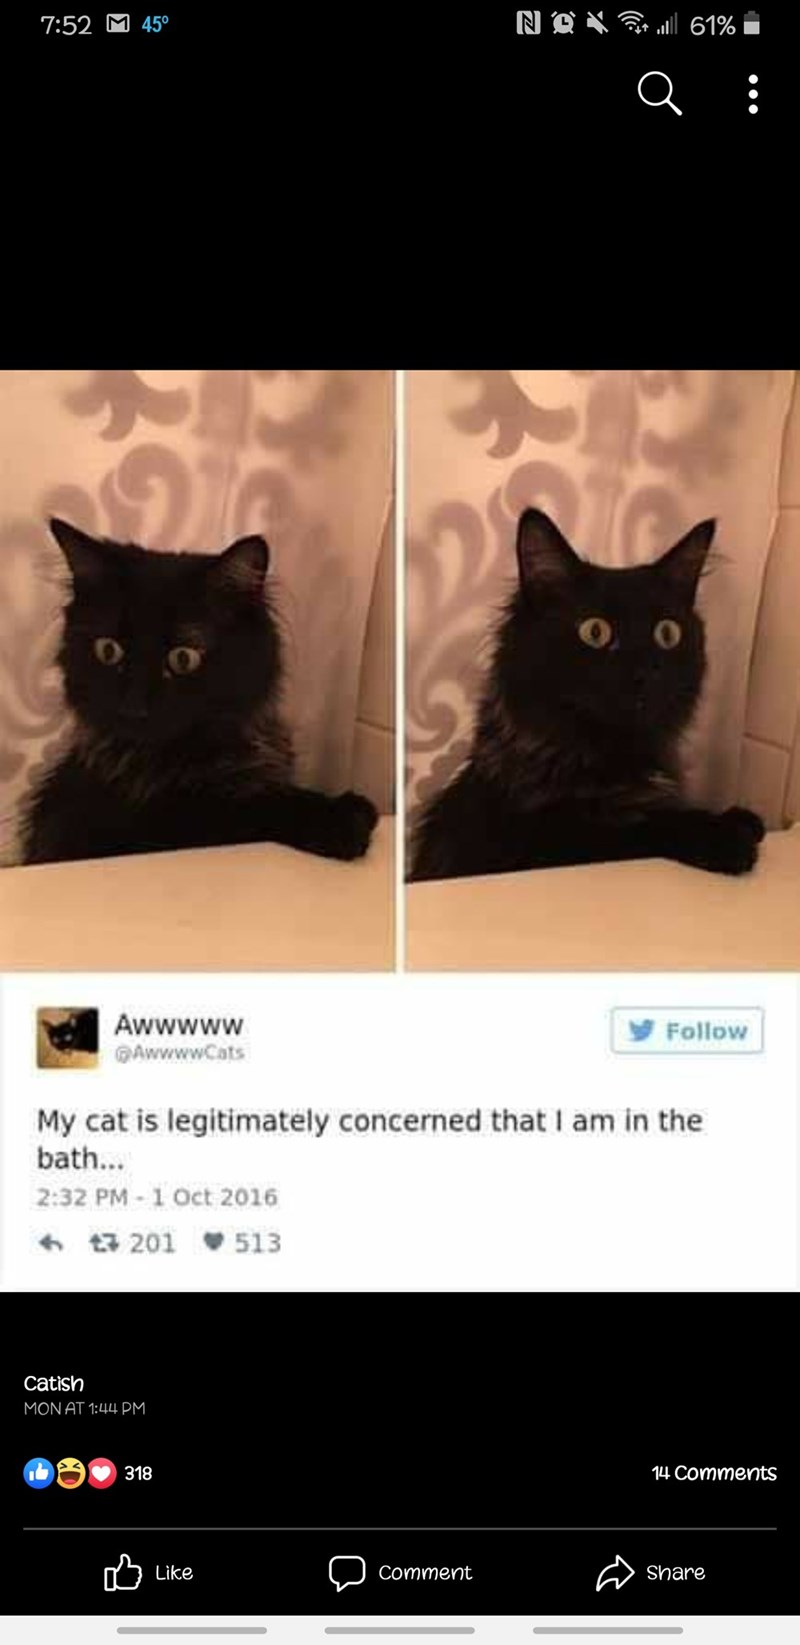 Cat - NA X G 61% 7:52 M 45° Awwwww GAwwwwCats Follow My cat is legitimately concerned that I am in the bath... 2:32 PM - 1 Oct 2016 6 17 201 513 Catish MON AT 1:44 PM 318 14 Comments Like Share Comment